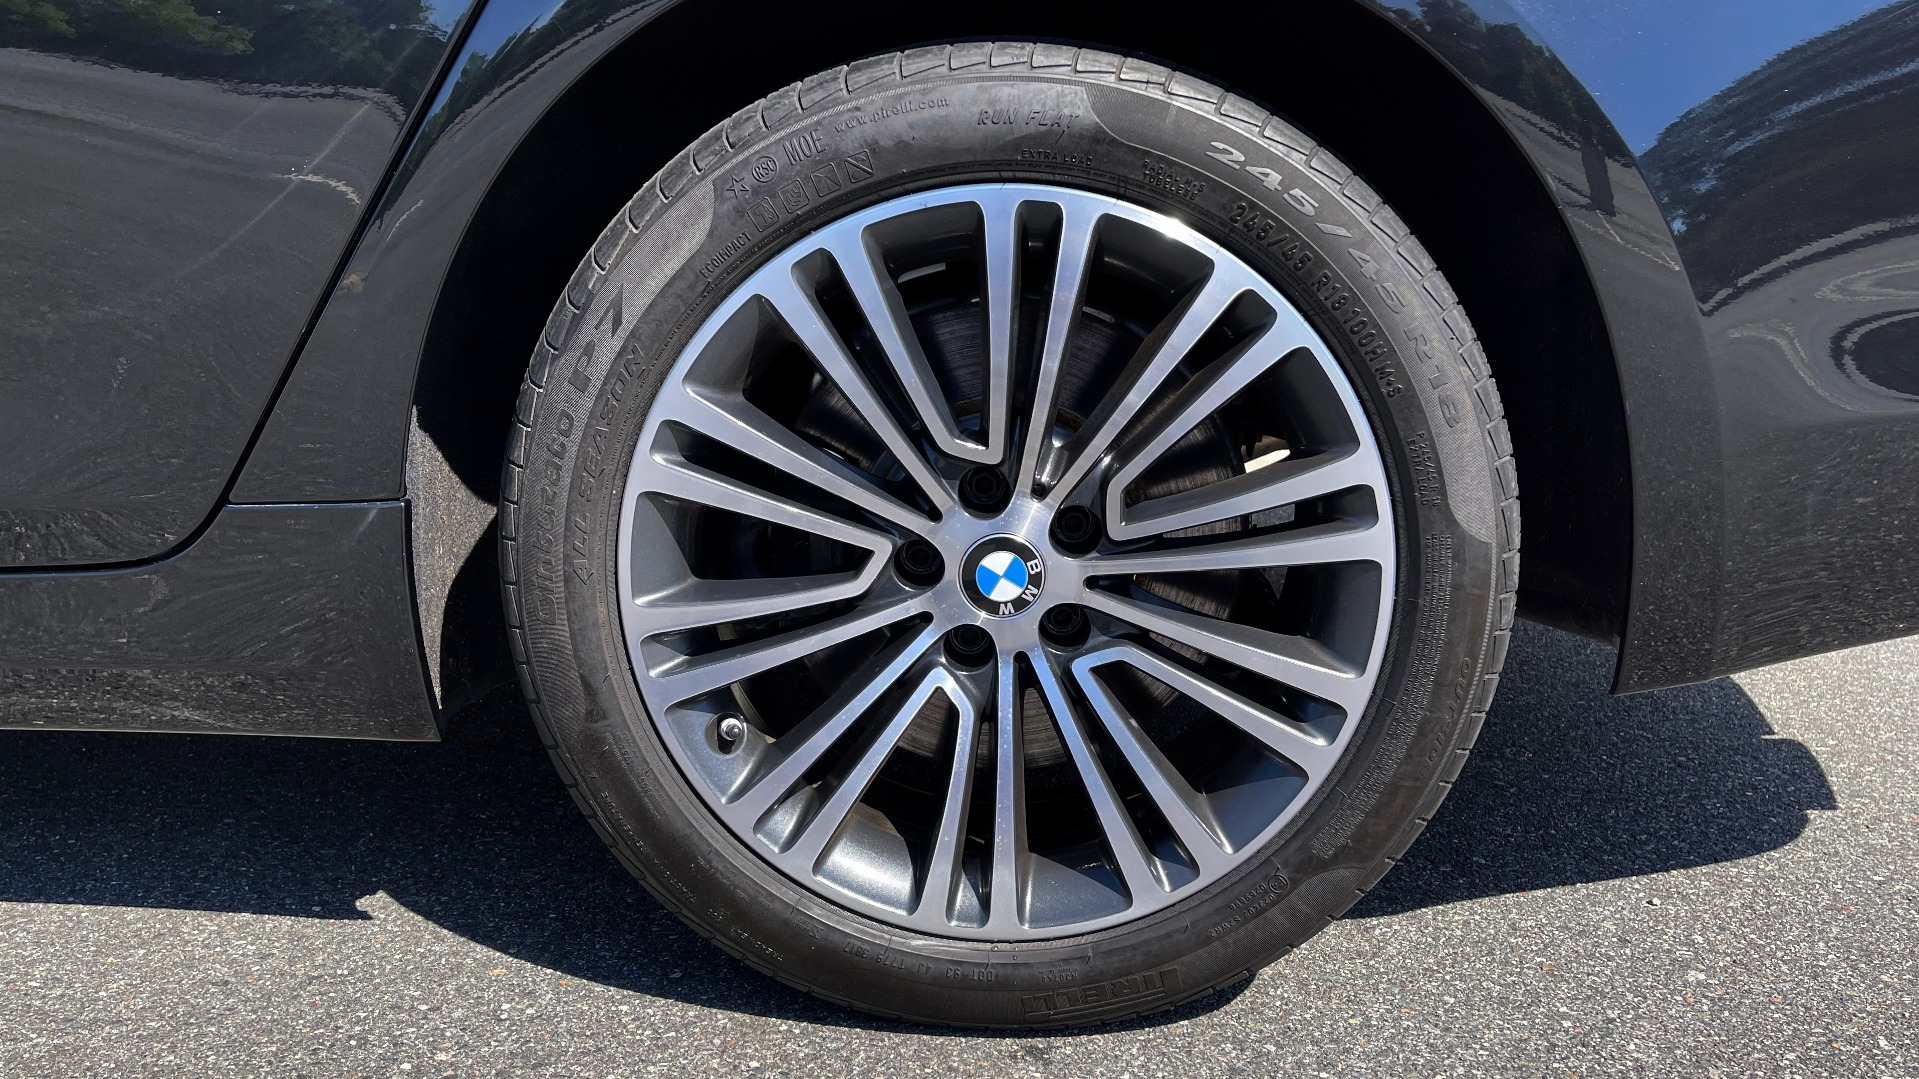 Used 2018 BMW 5 SERIES 540I XDRIVE PREMIUM / NAV / PARK ASST / WIRELESS CHARGING H/K SND for sale $38,395 at Formula Imports in Charlotte NC 28227 85